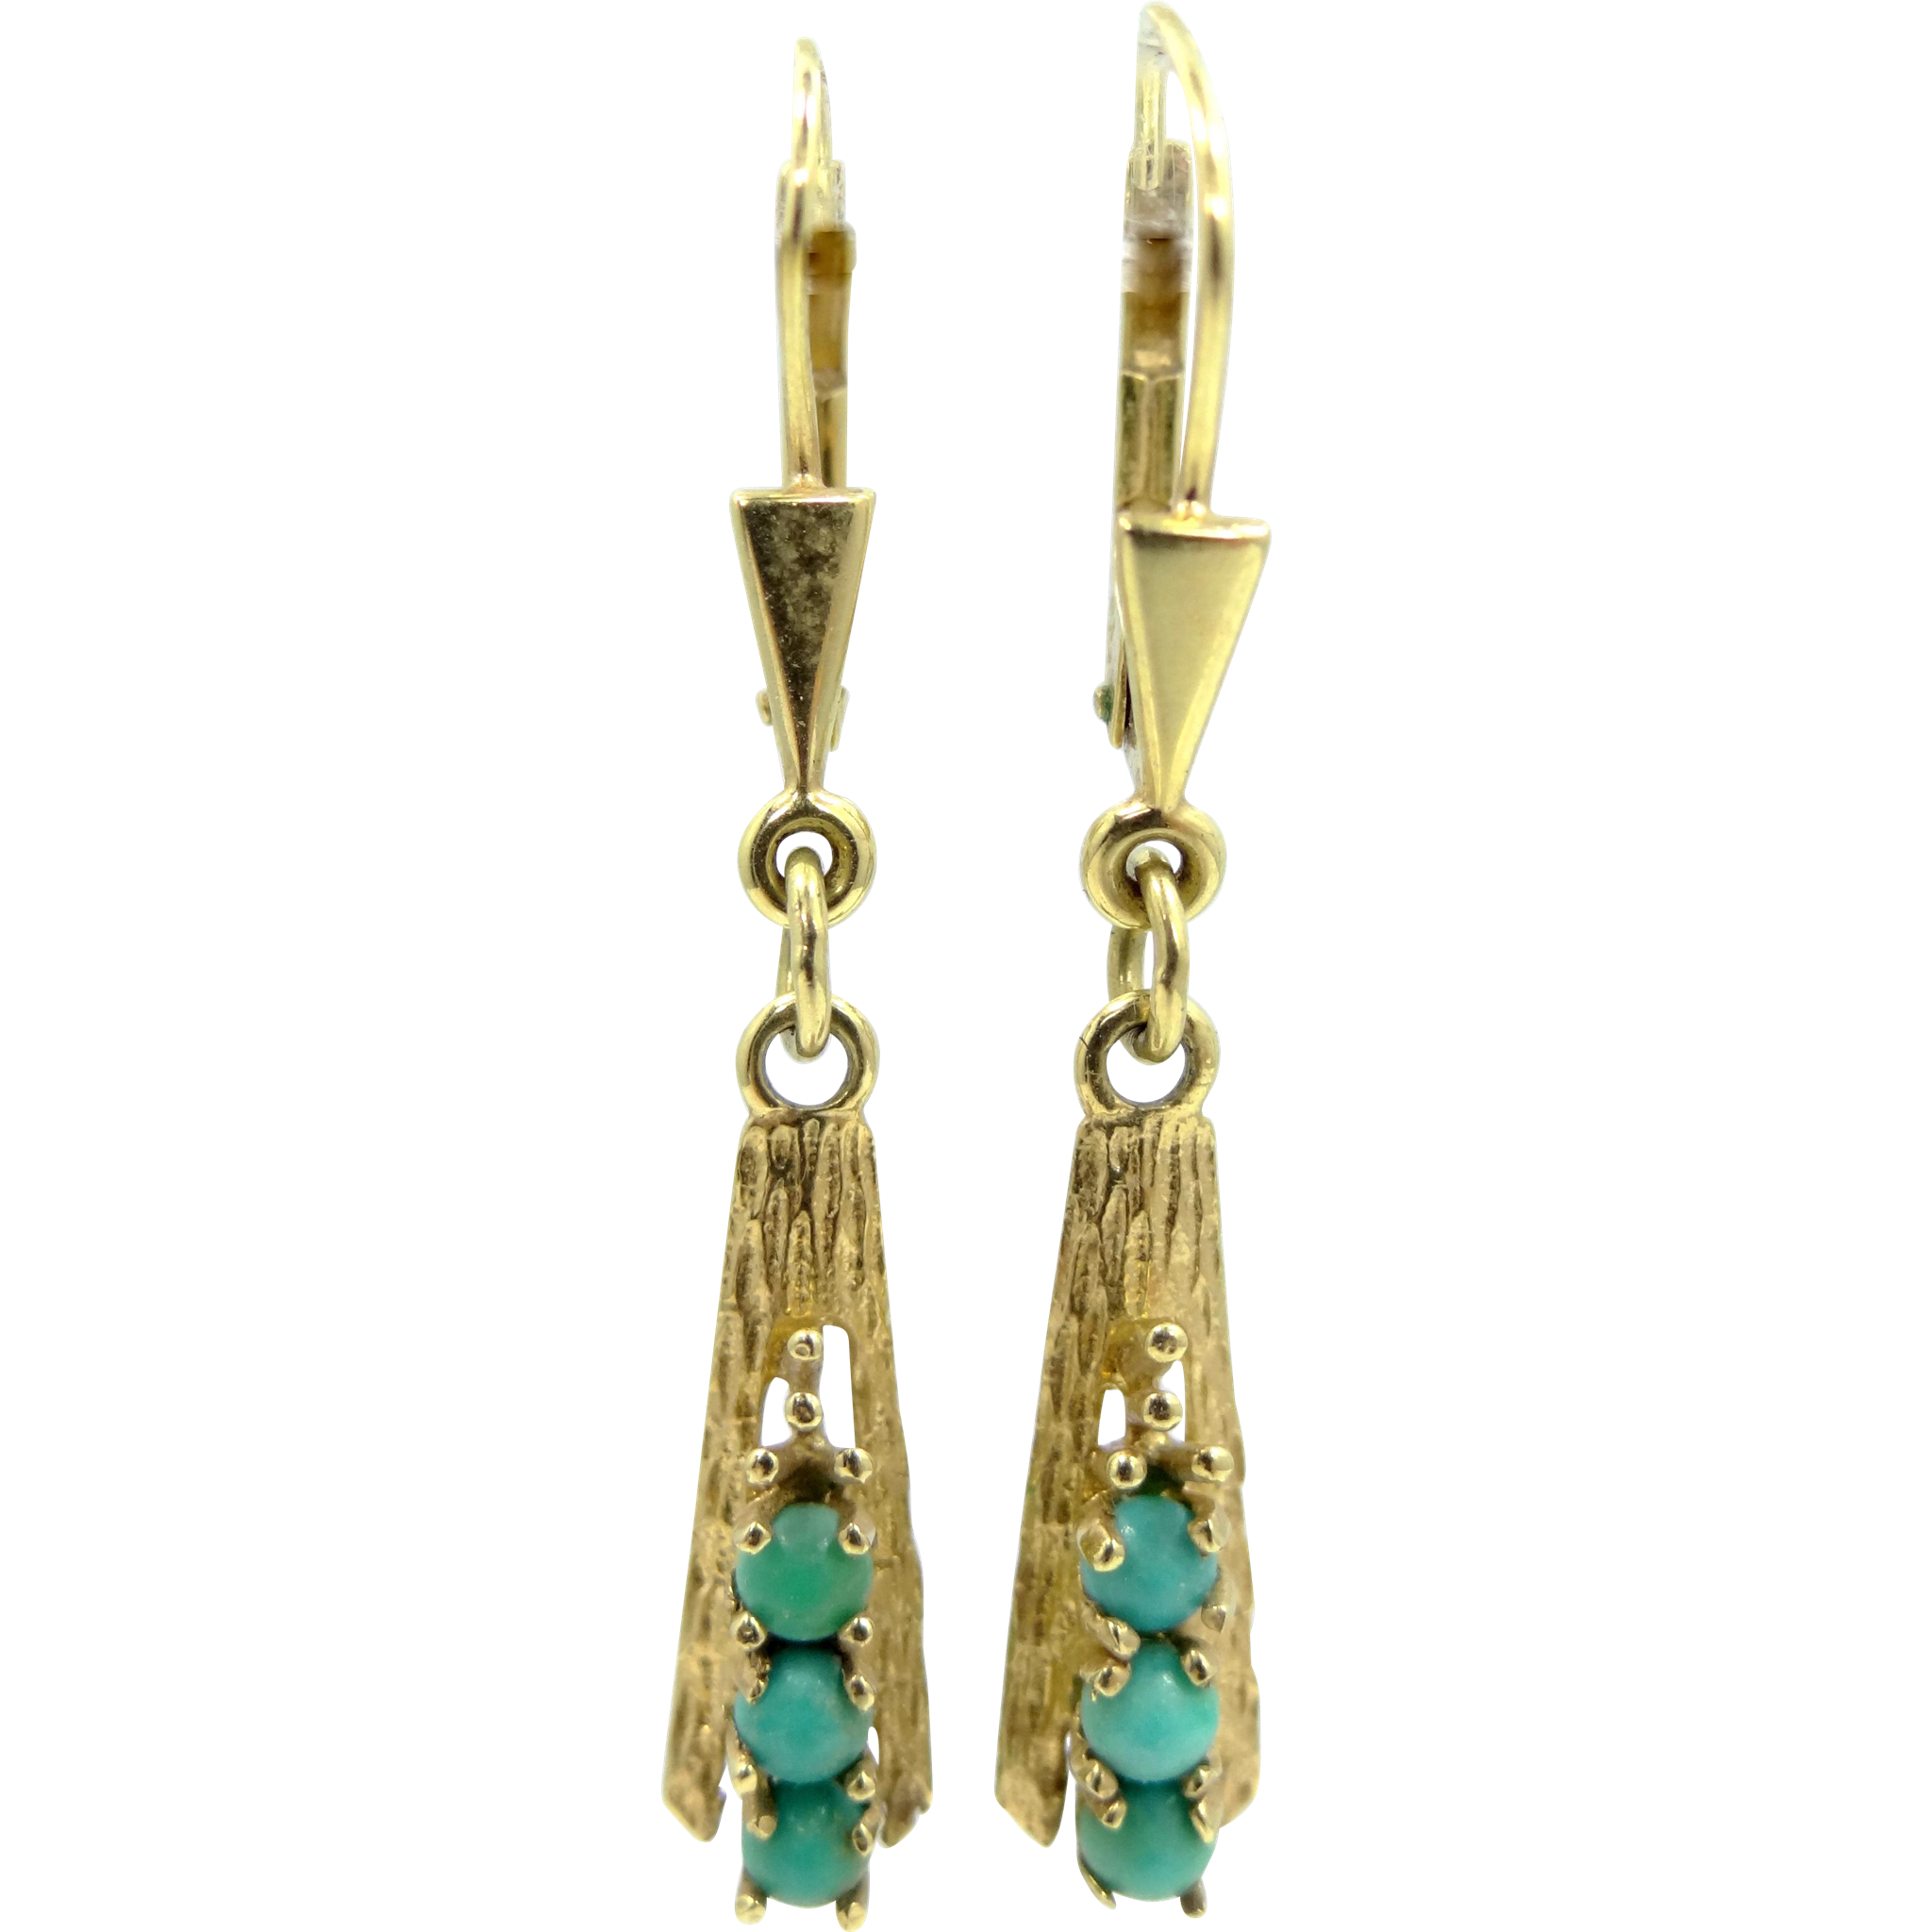 14k Gold Turquoise Dangle Earrings Victorian Style